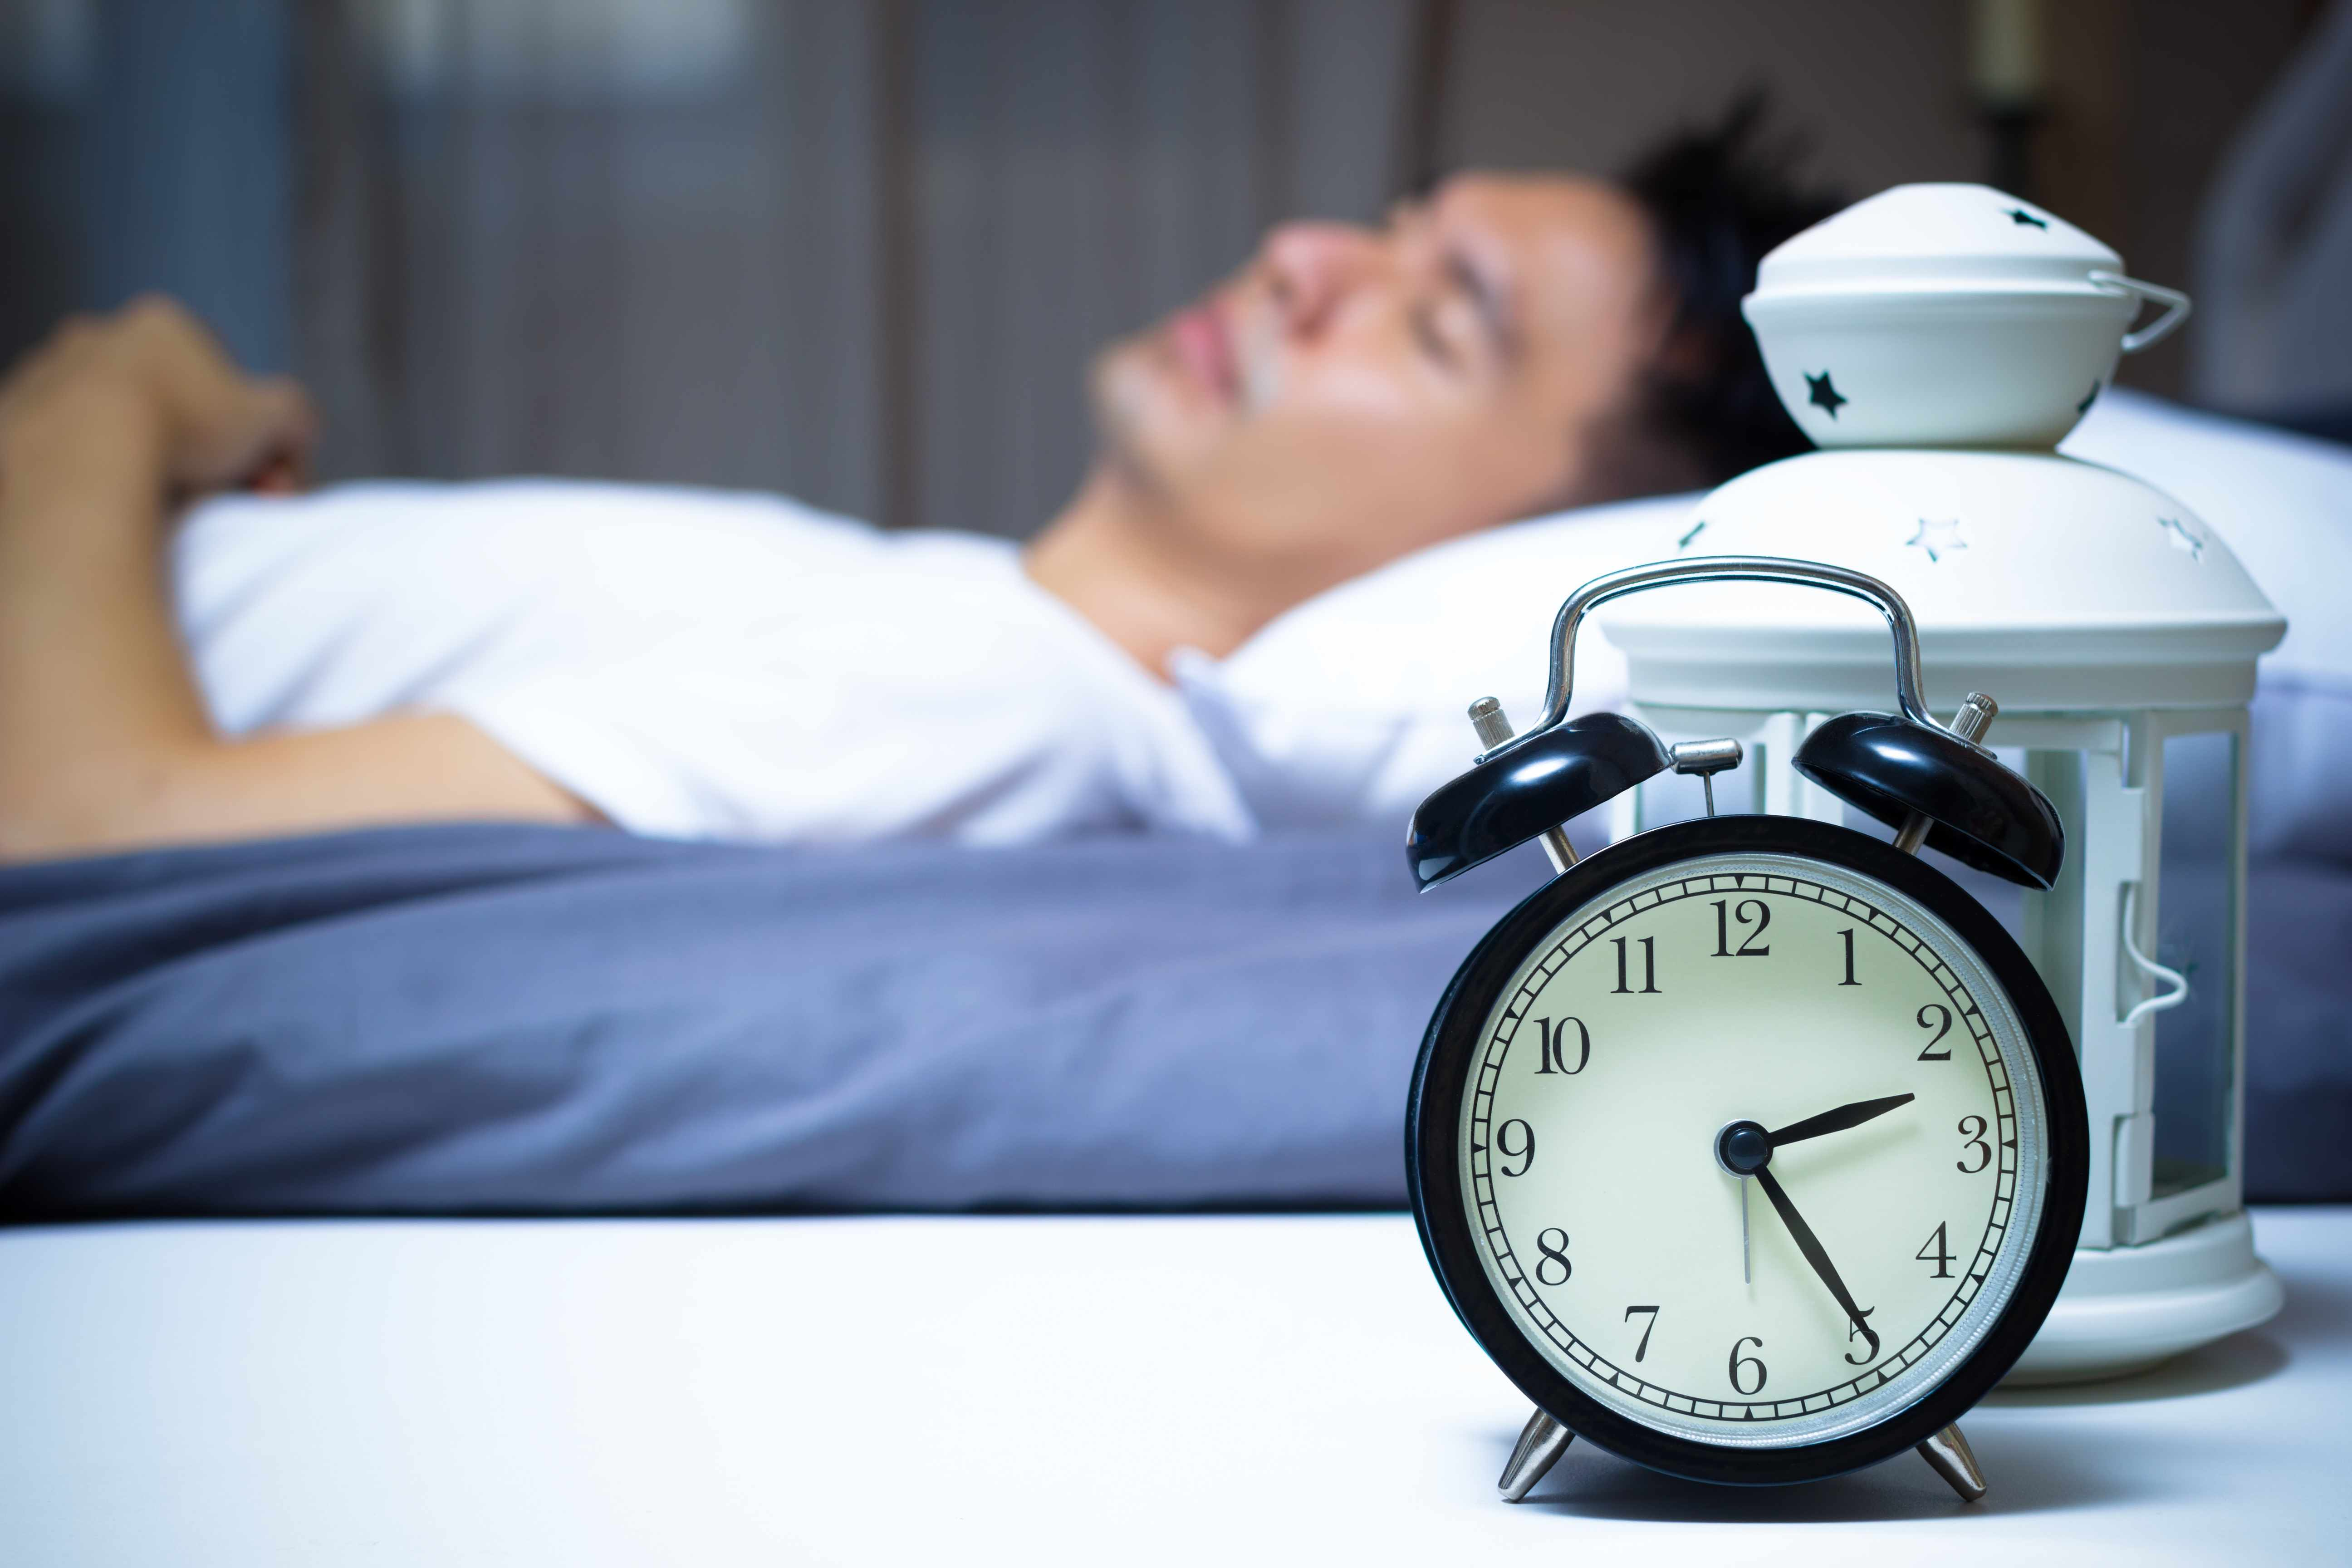 a man sleeping in bed with alarm clock and light on side table